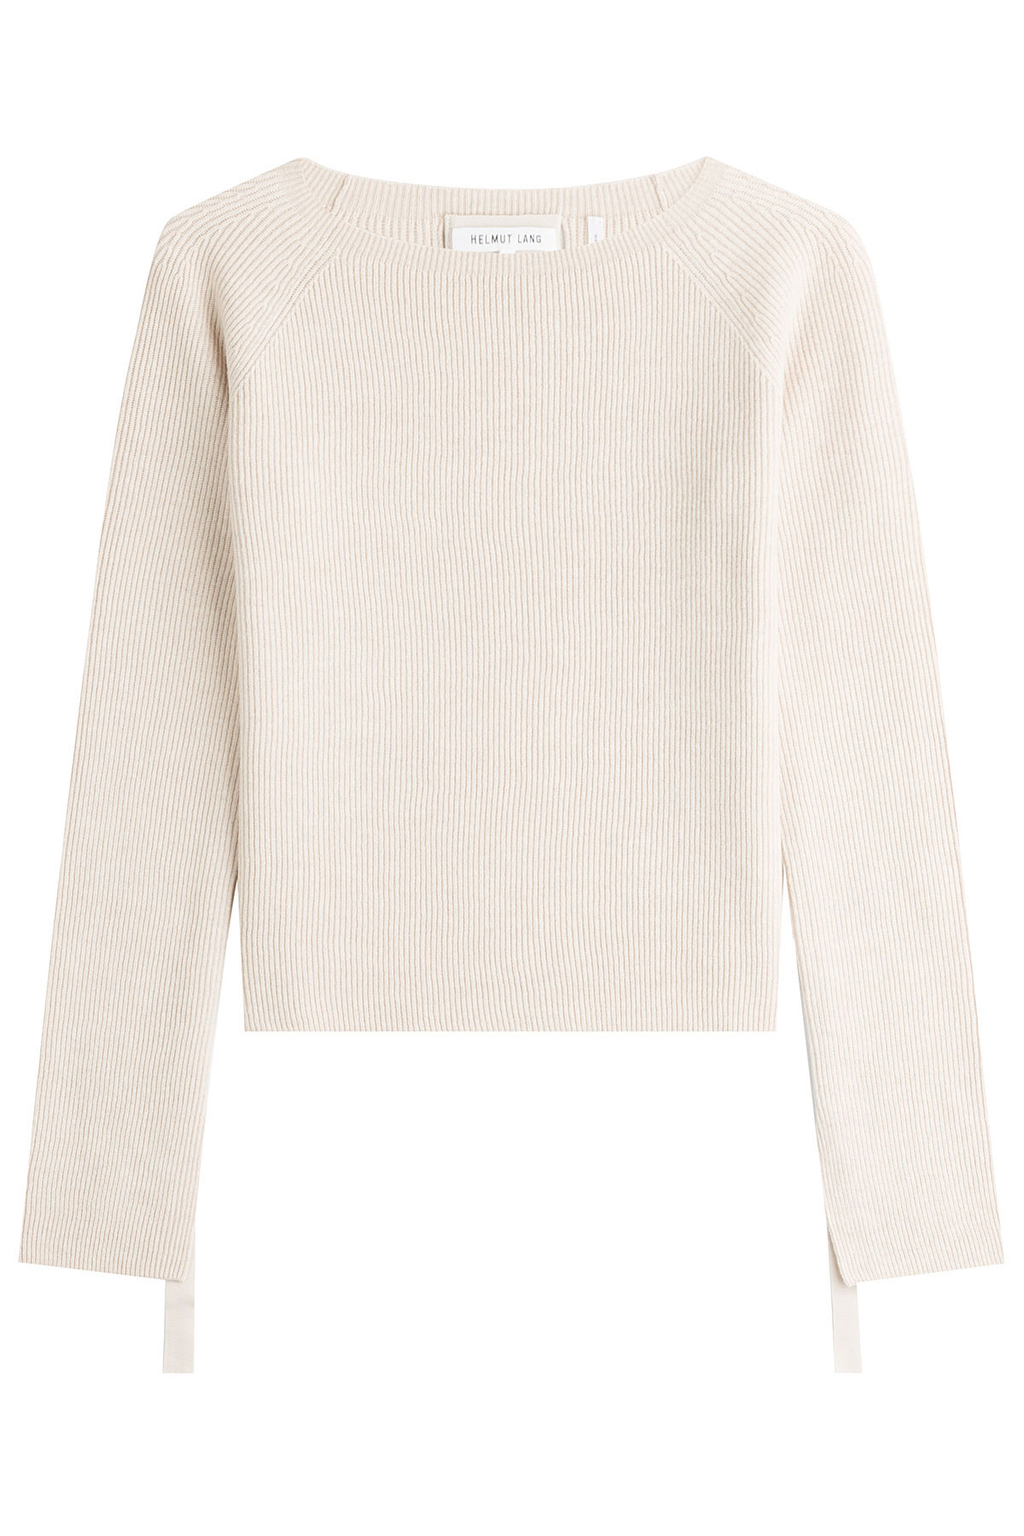 Wool Pullover With Cashmere - pattern: plain; style: standard; predominant colour: light grey; occasions: casual; length: standard; fibres: wool - 100%; fit: standard fit; neckline: crew; sleeve length: long sleeve; sleeve style: standard; texture group: knits/crochet; pattern type: knitted - fine stitch; wardrobe: basic; season: a/w 2016